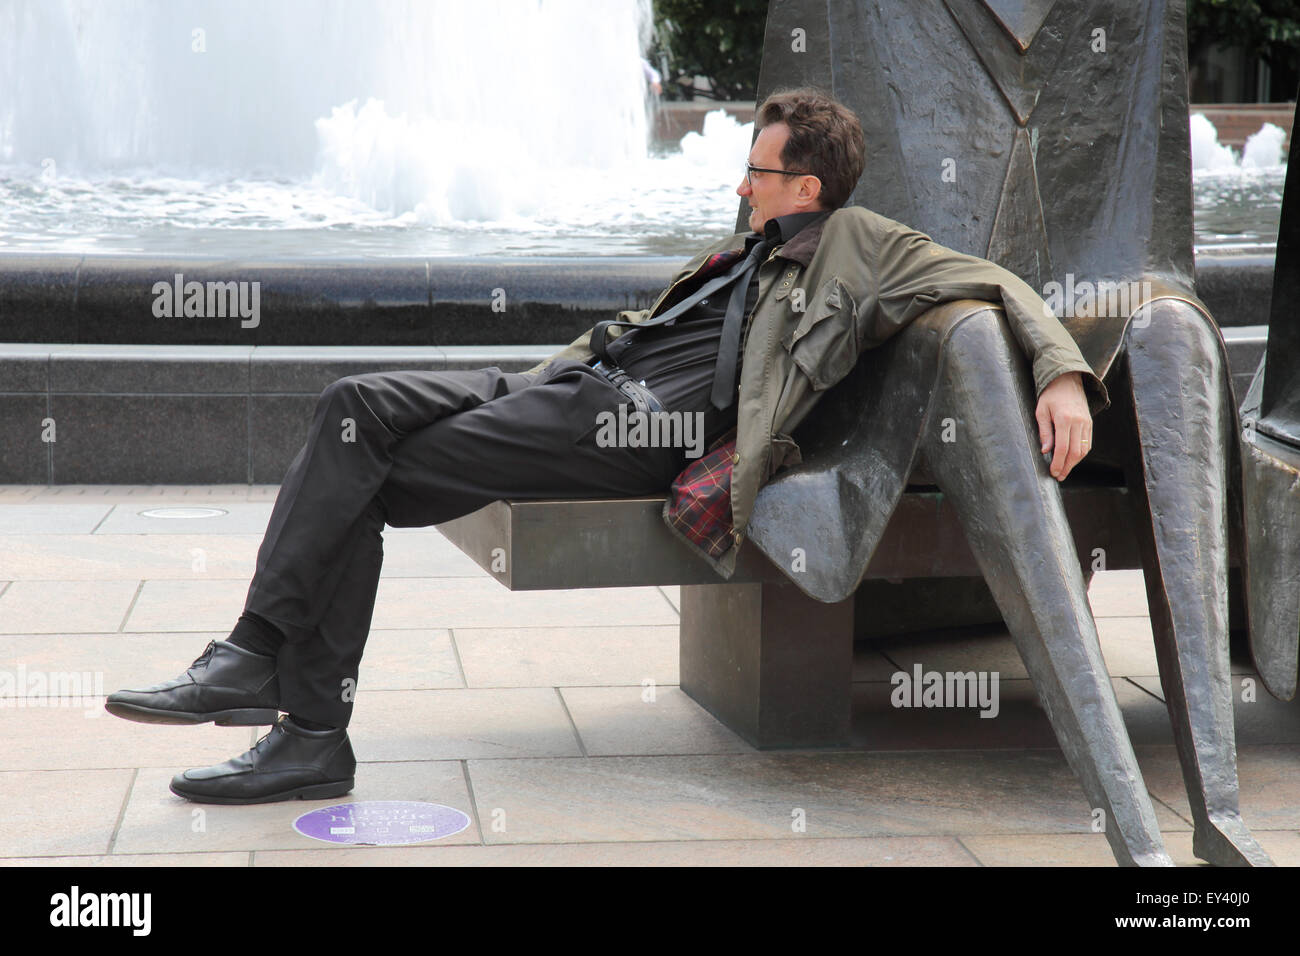 laid back in london docklands - Stock Image